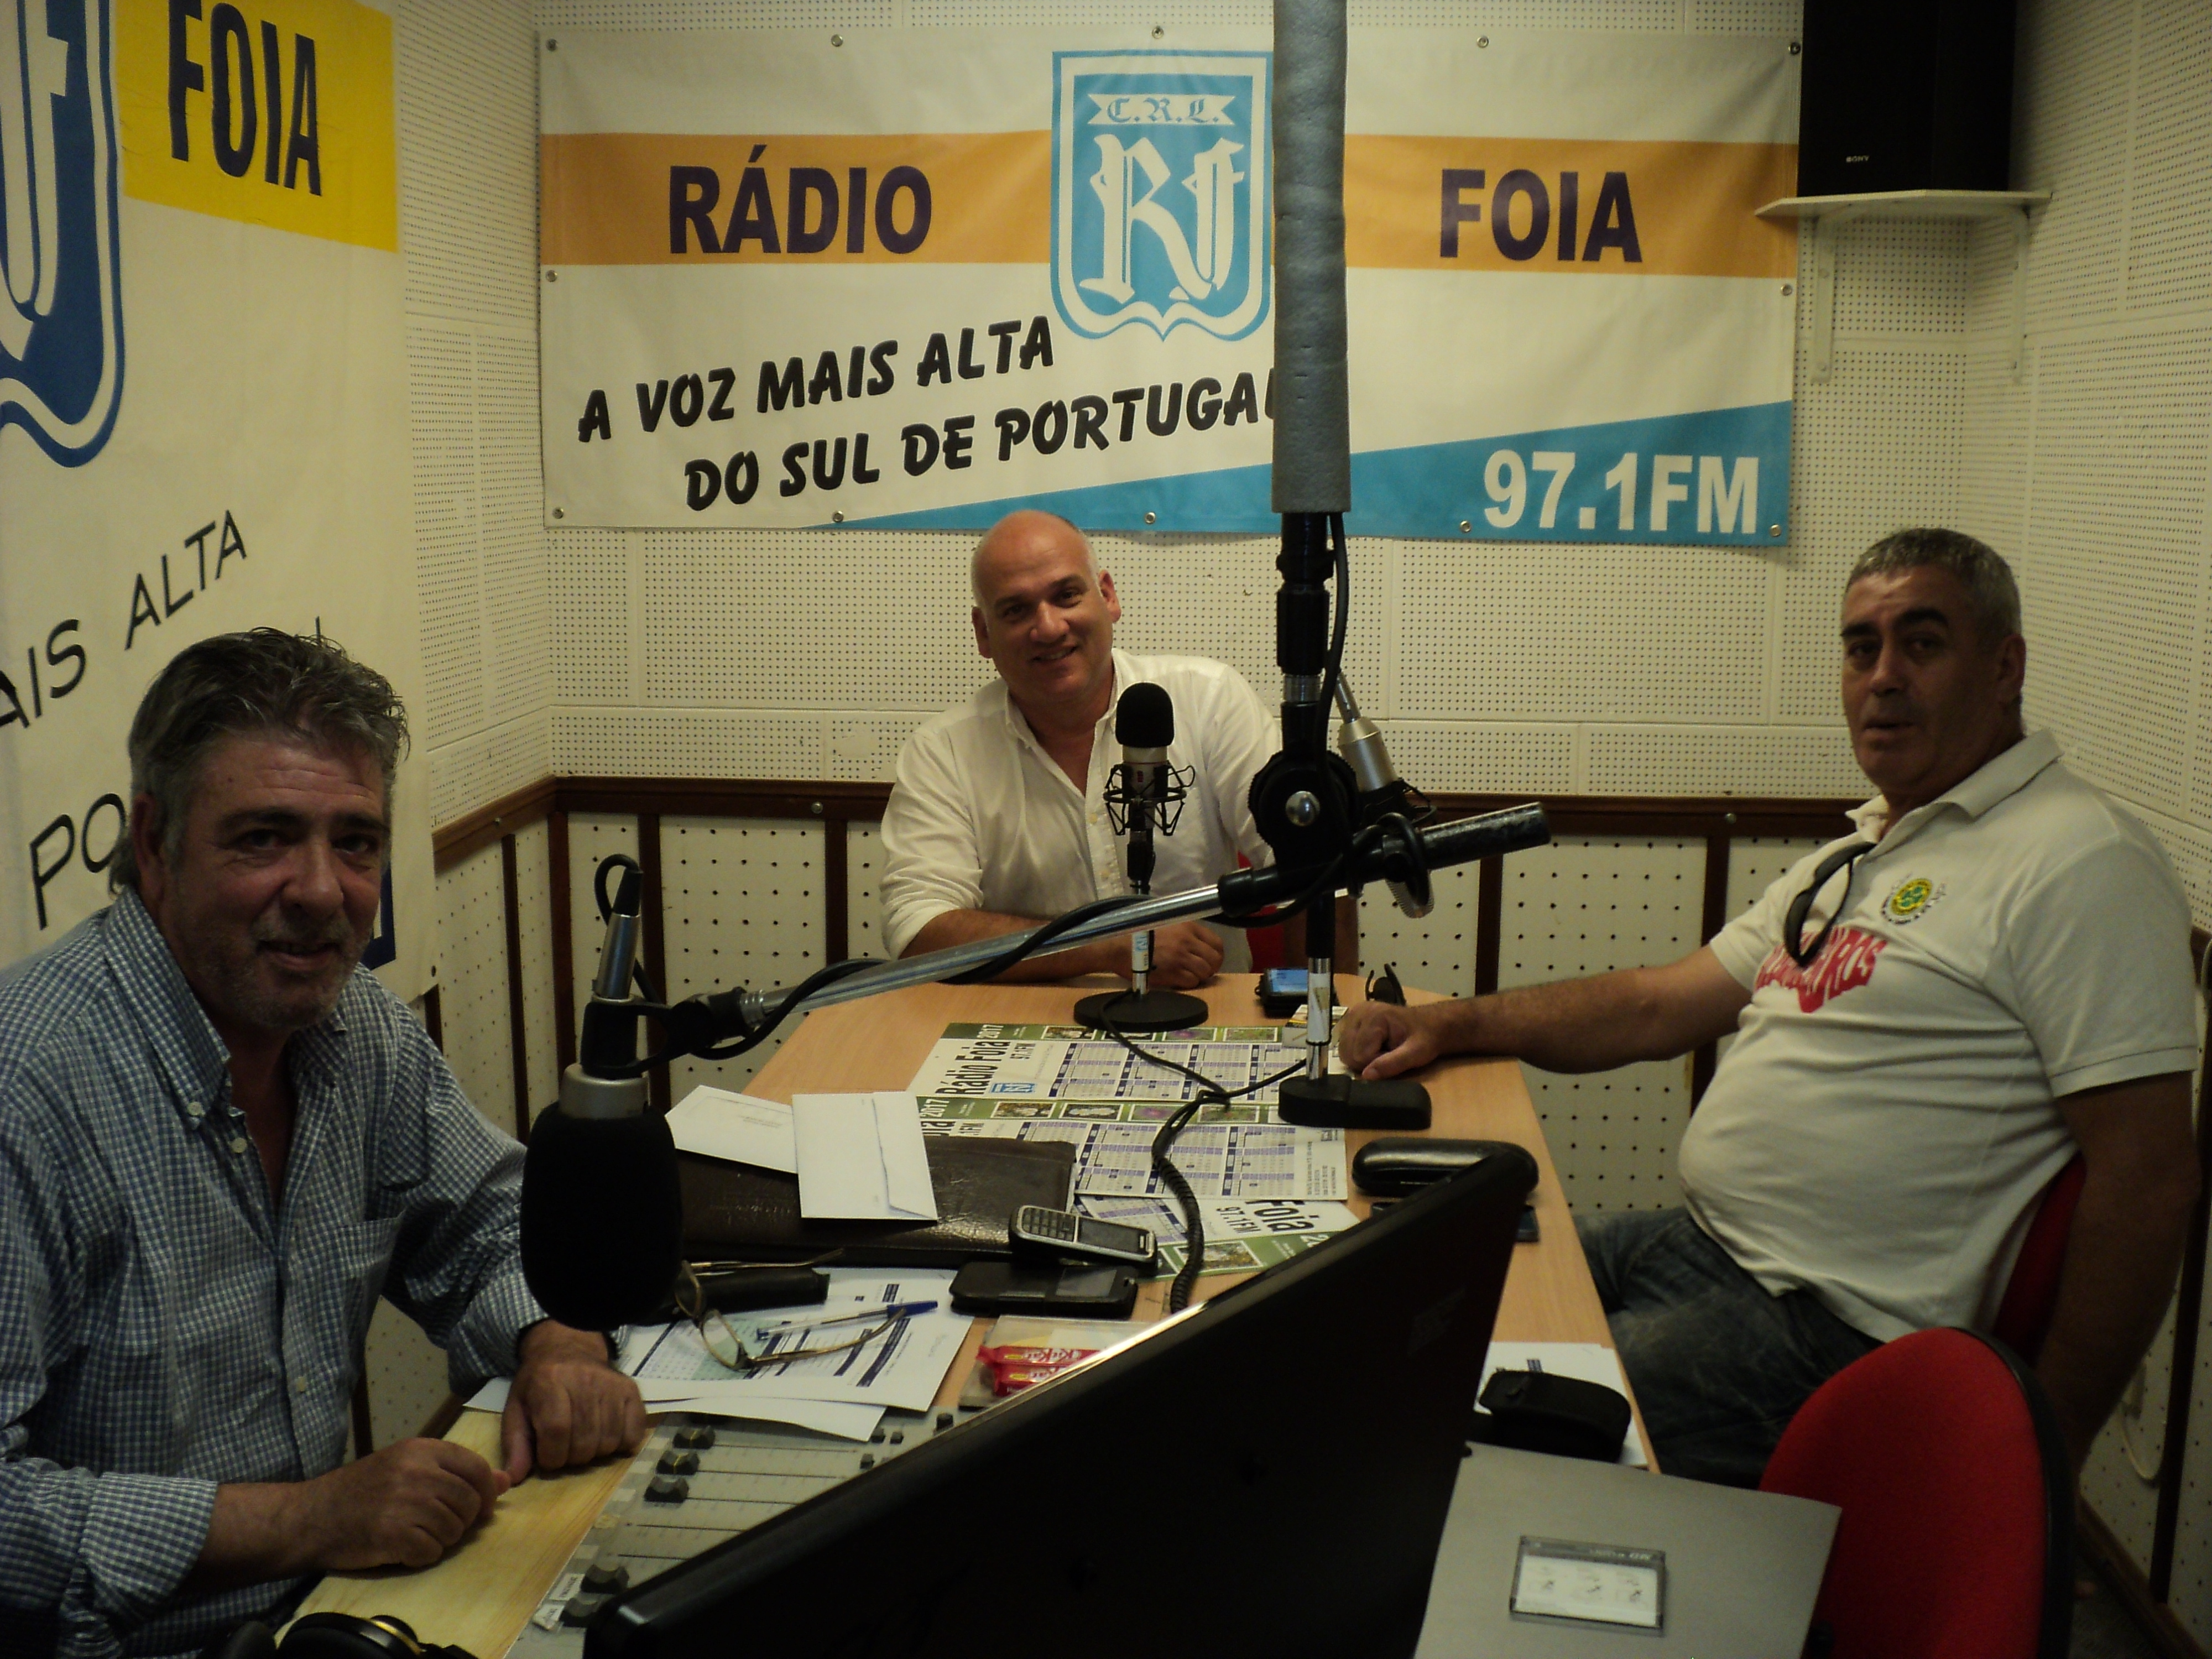 The best: ouvir radio 100 fortaleza online dating